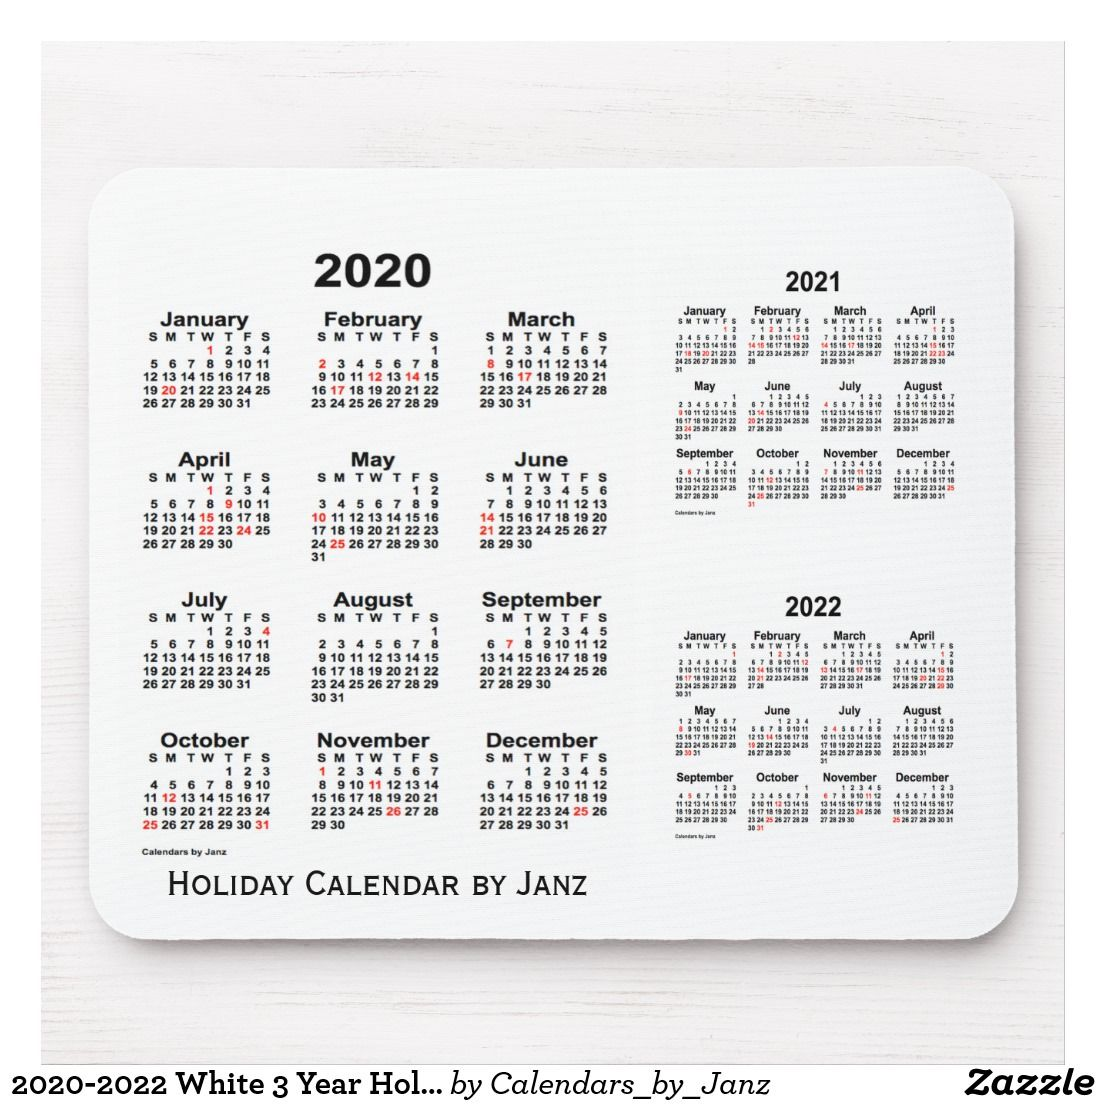 2020 2022 White 3 Year Holiday Calendar By Janz Mouse Pad Zazzle Com Holiday Calendar Custom Calendar Calendar Design